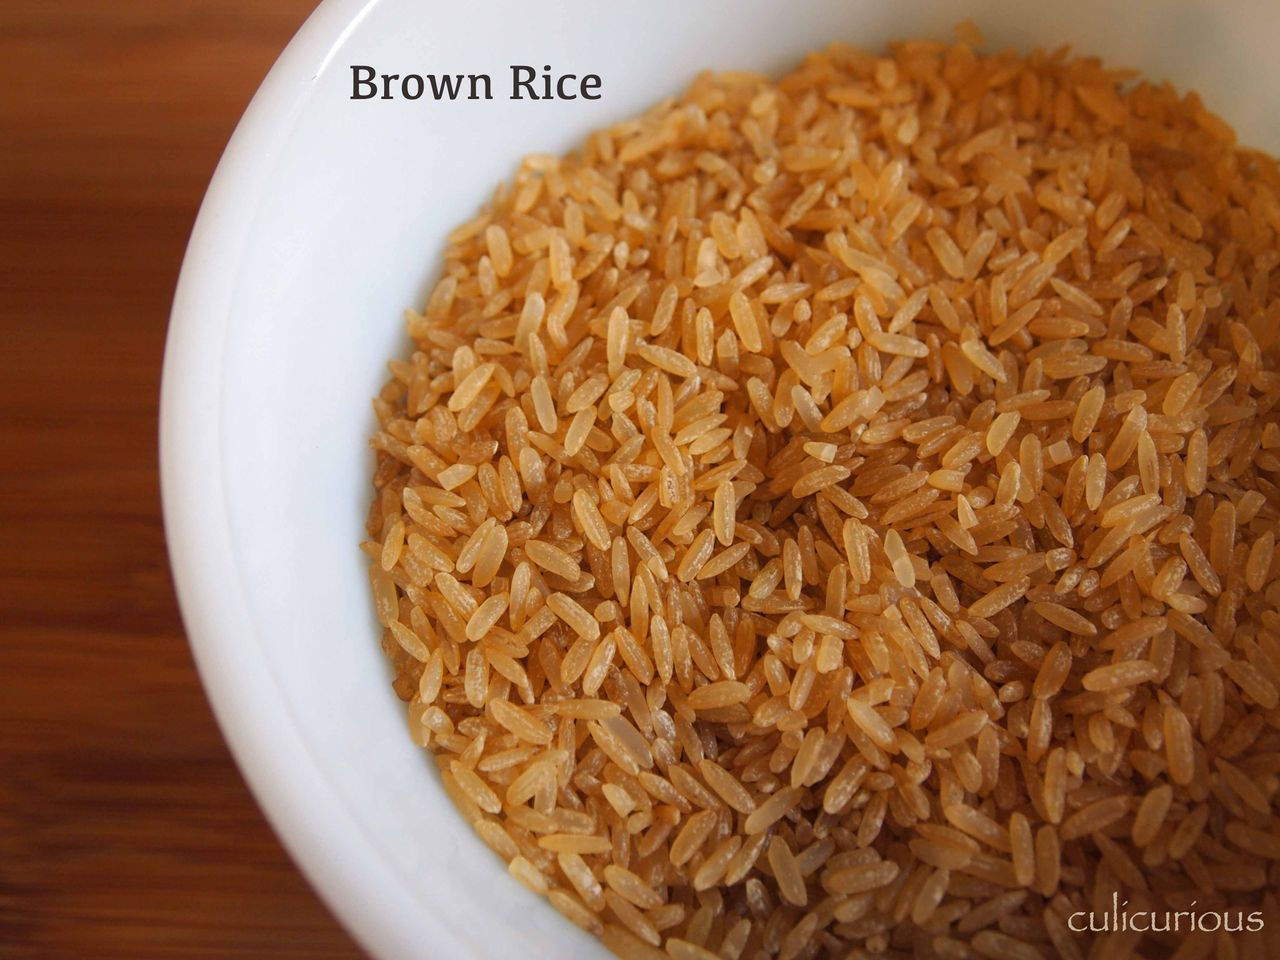 Файл:Brown rice.jpg